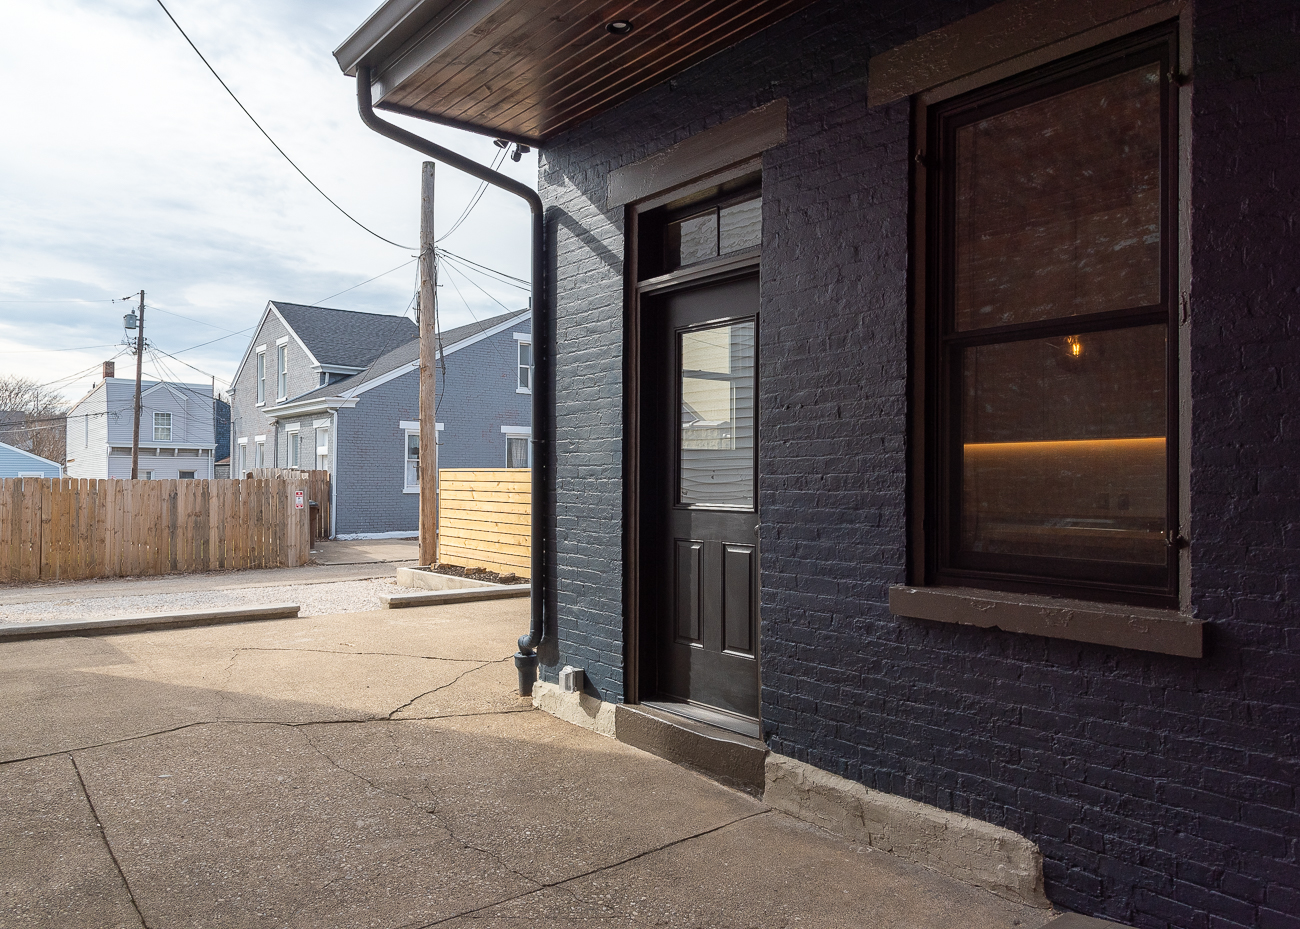 Just beyond the breezeway, the property opens up to a modest patio with a two-car parking area behind the house. / Image: Phil Armstrong, Cincinnati Refined // Published: 3.15.19